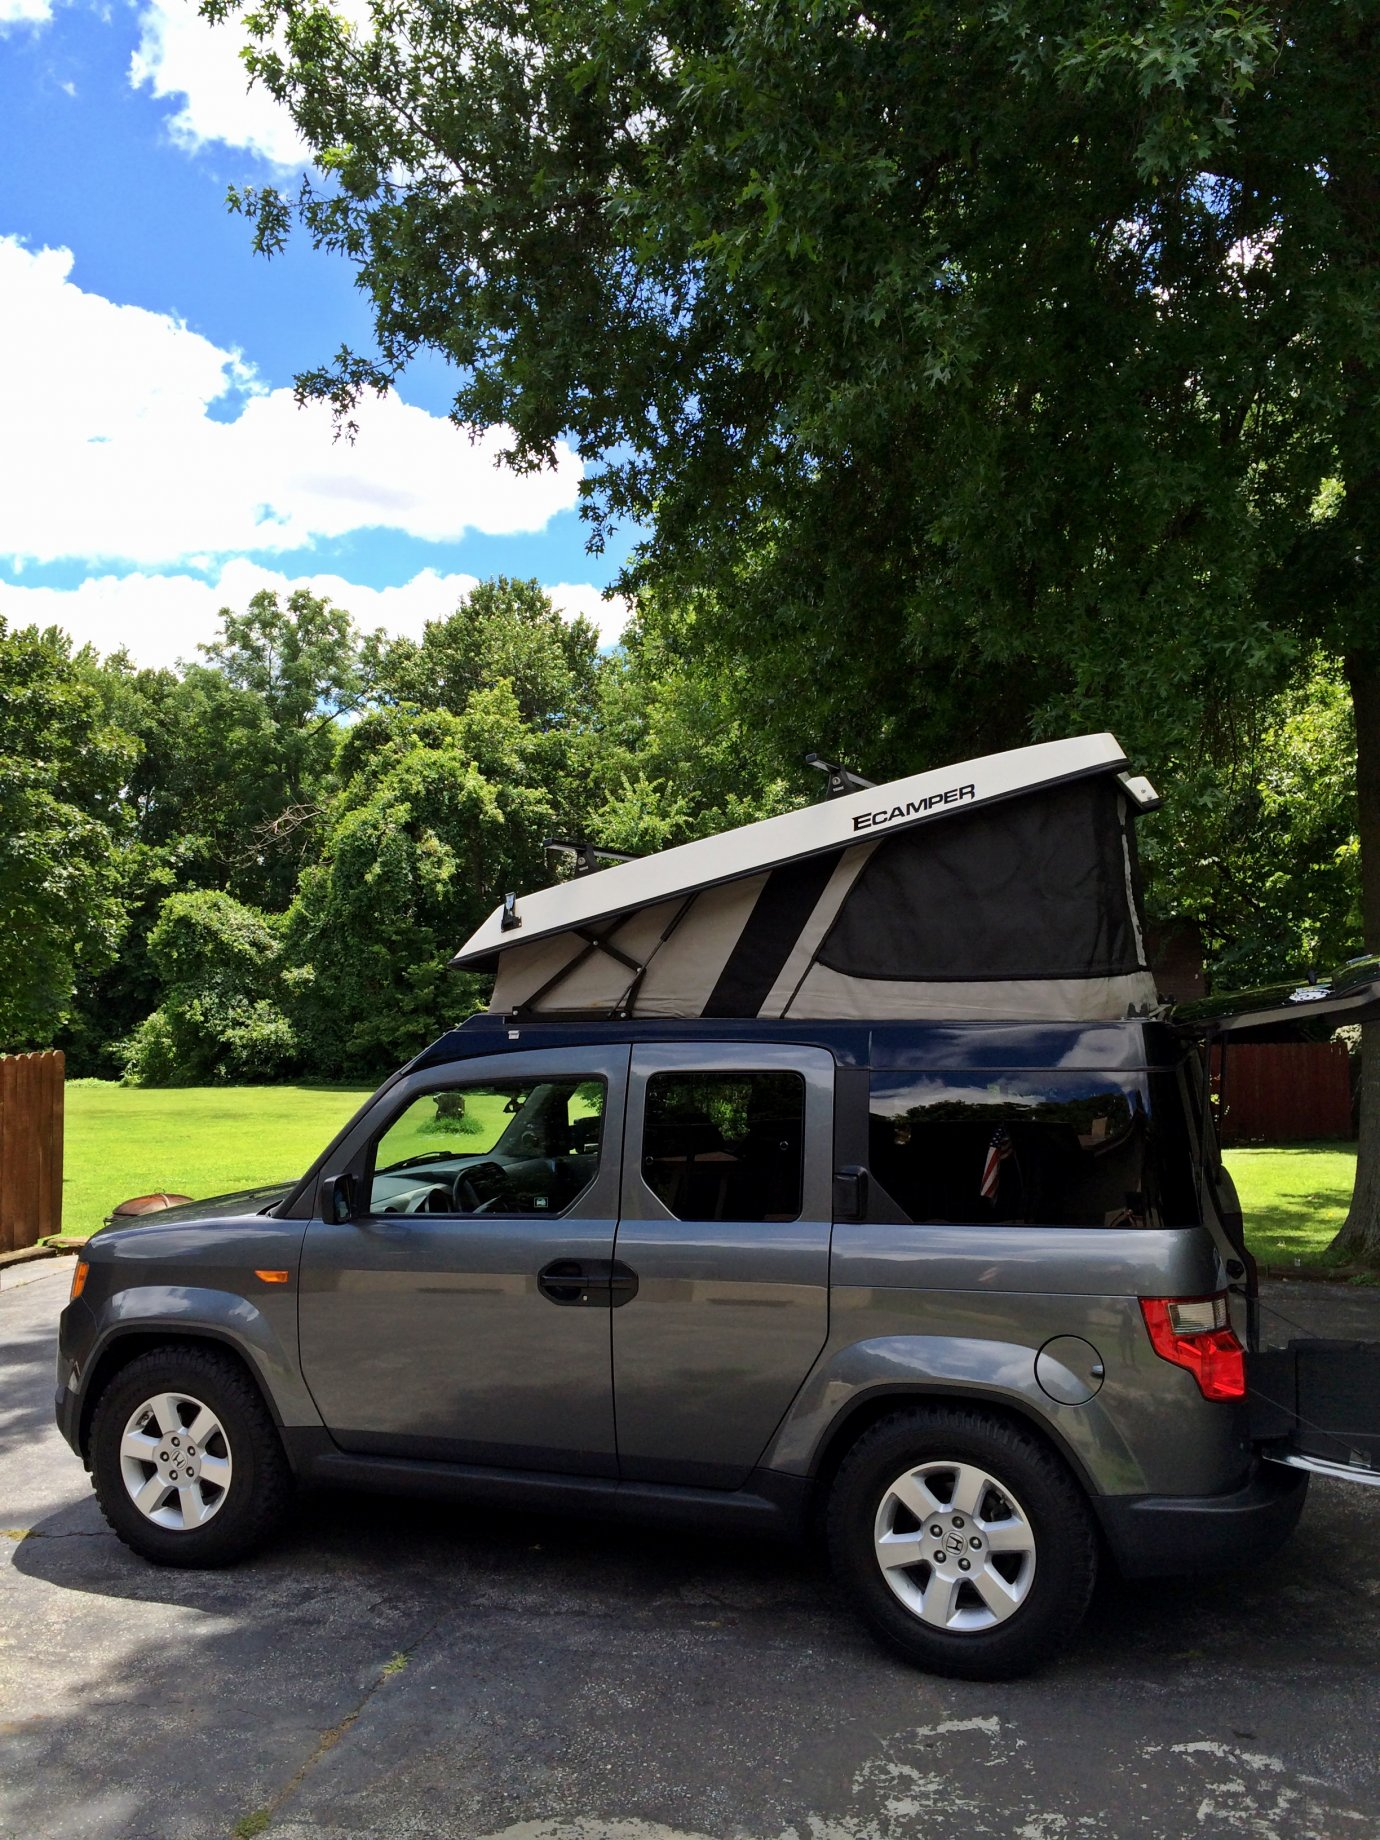 2010 Element EX with Ecamper conversion - Expedition Portal